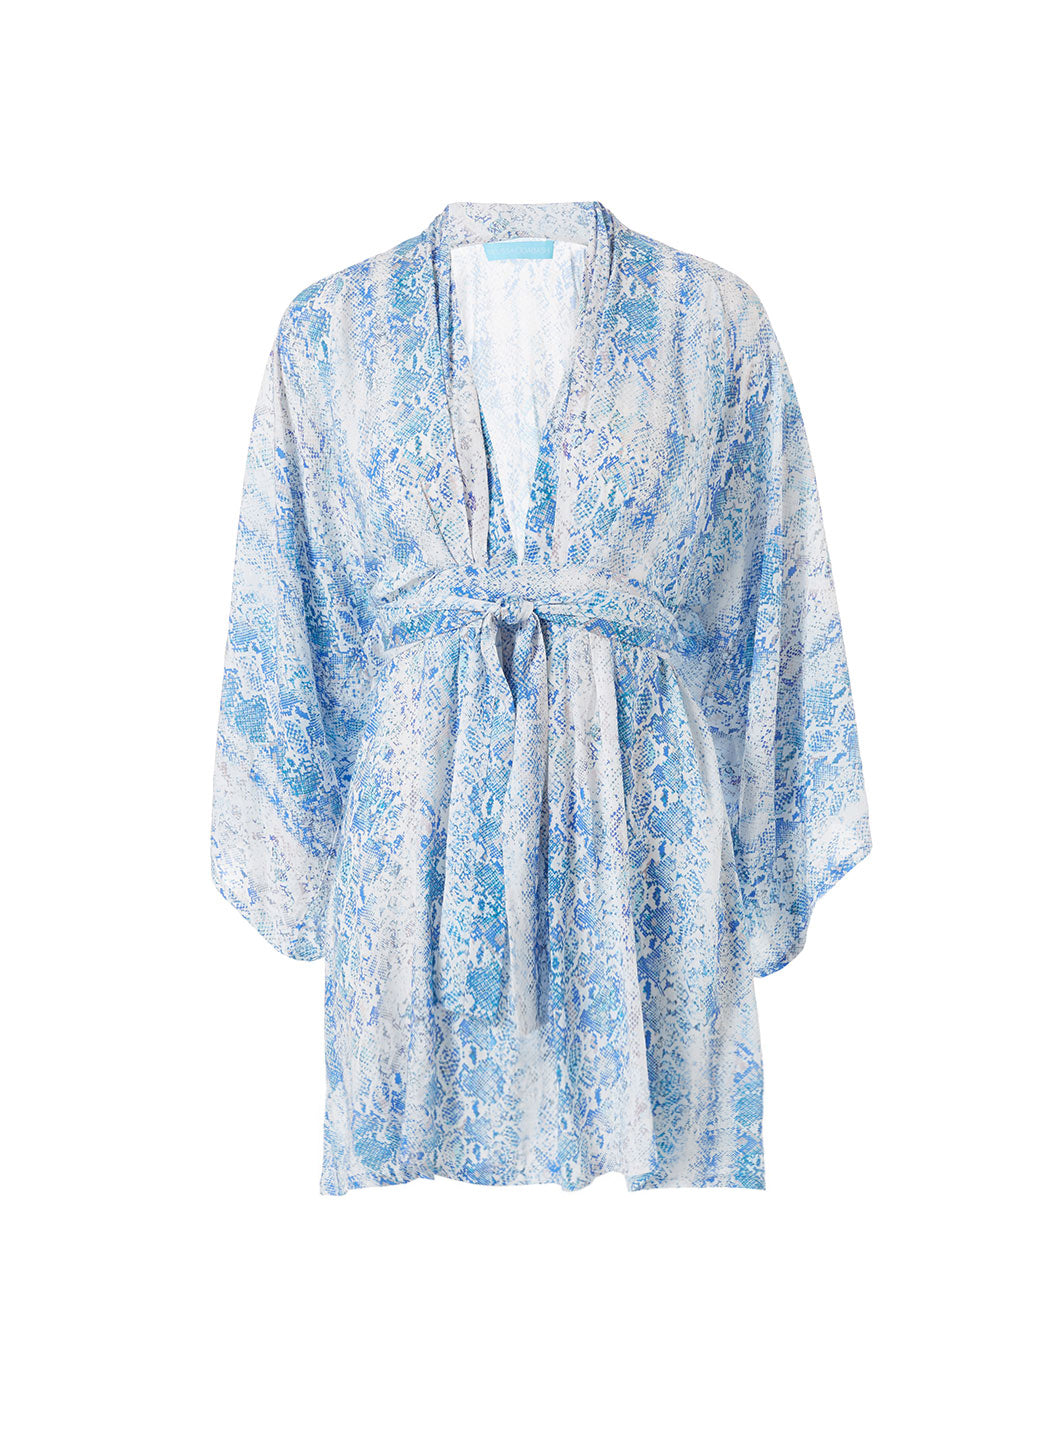 Eloise Serpente Belted Short Dress - Melissa Odabash Kaftans